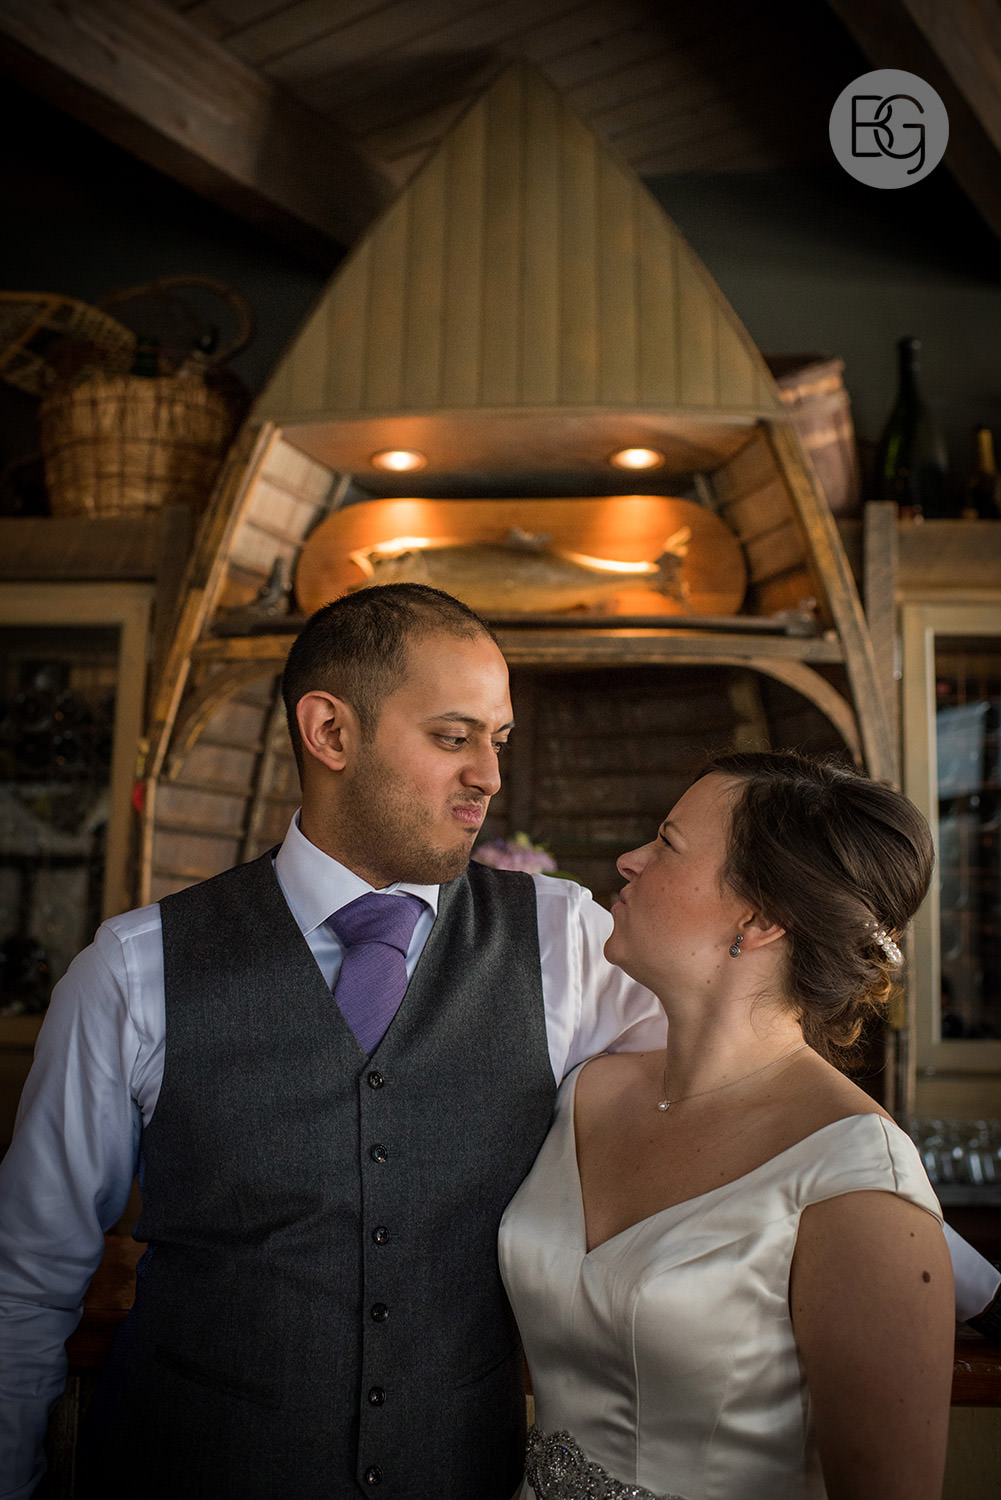 wedding venues in Calgary winter river cafe prices island park photography